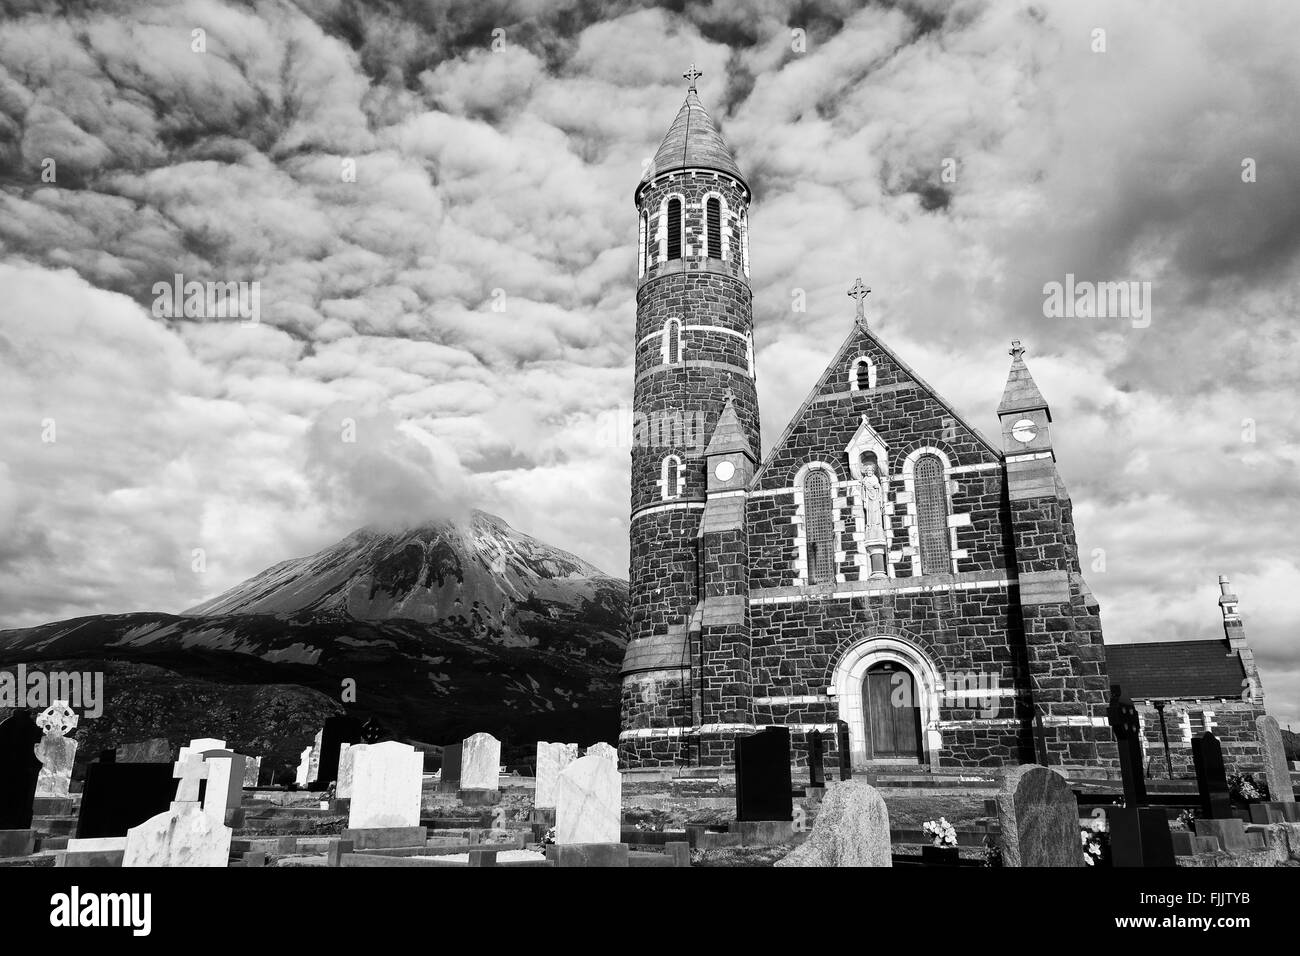 Dunlewy Church & Mount Errigal, Dunlewy Village, County Donegal, Ireland - Stock Image